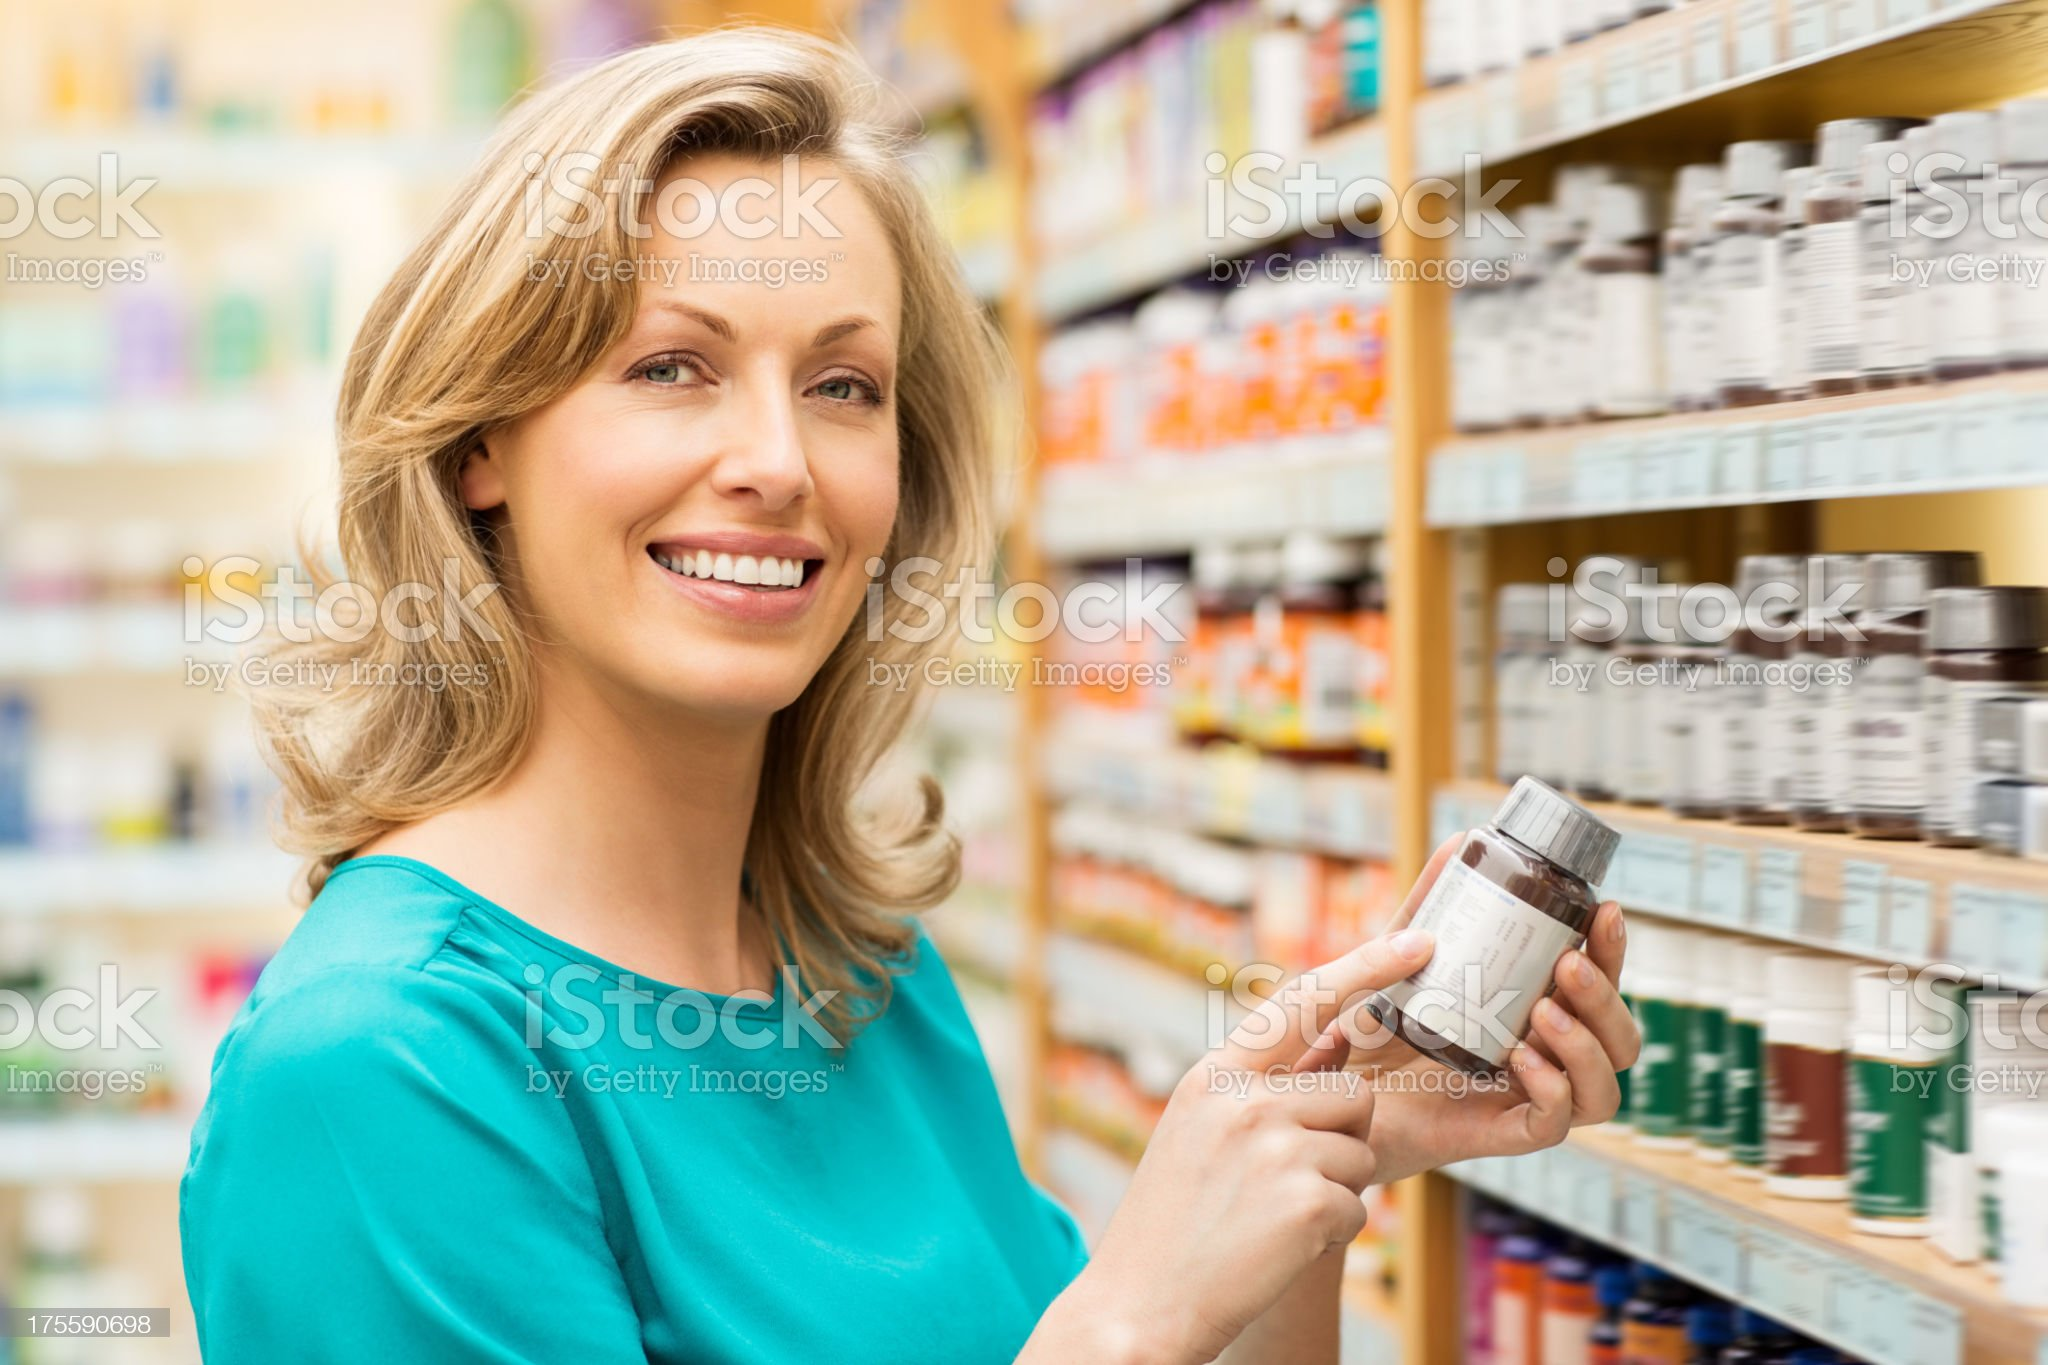 Beautiful Woman Holding Pill Bottle royalty-free stock photo